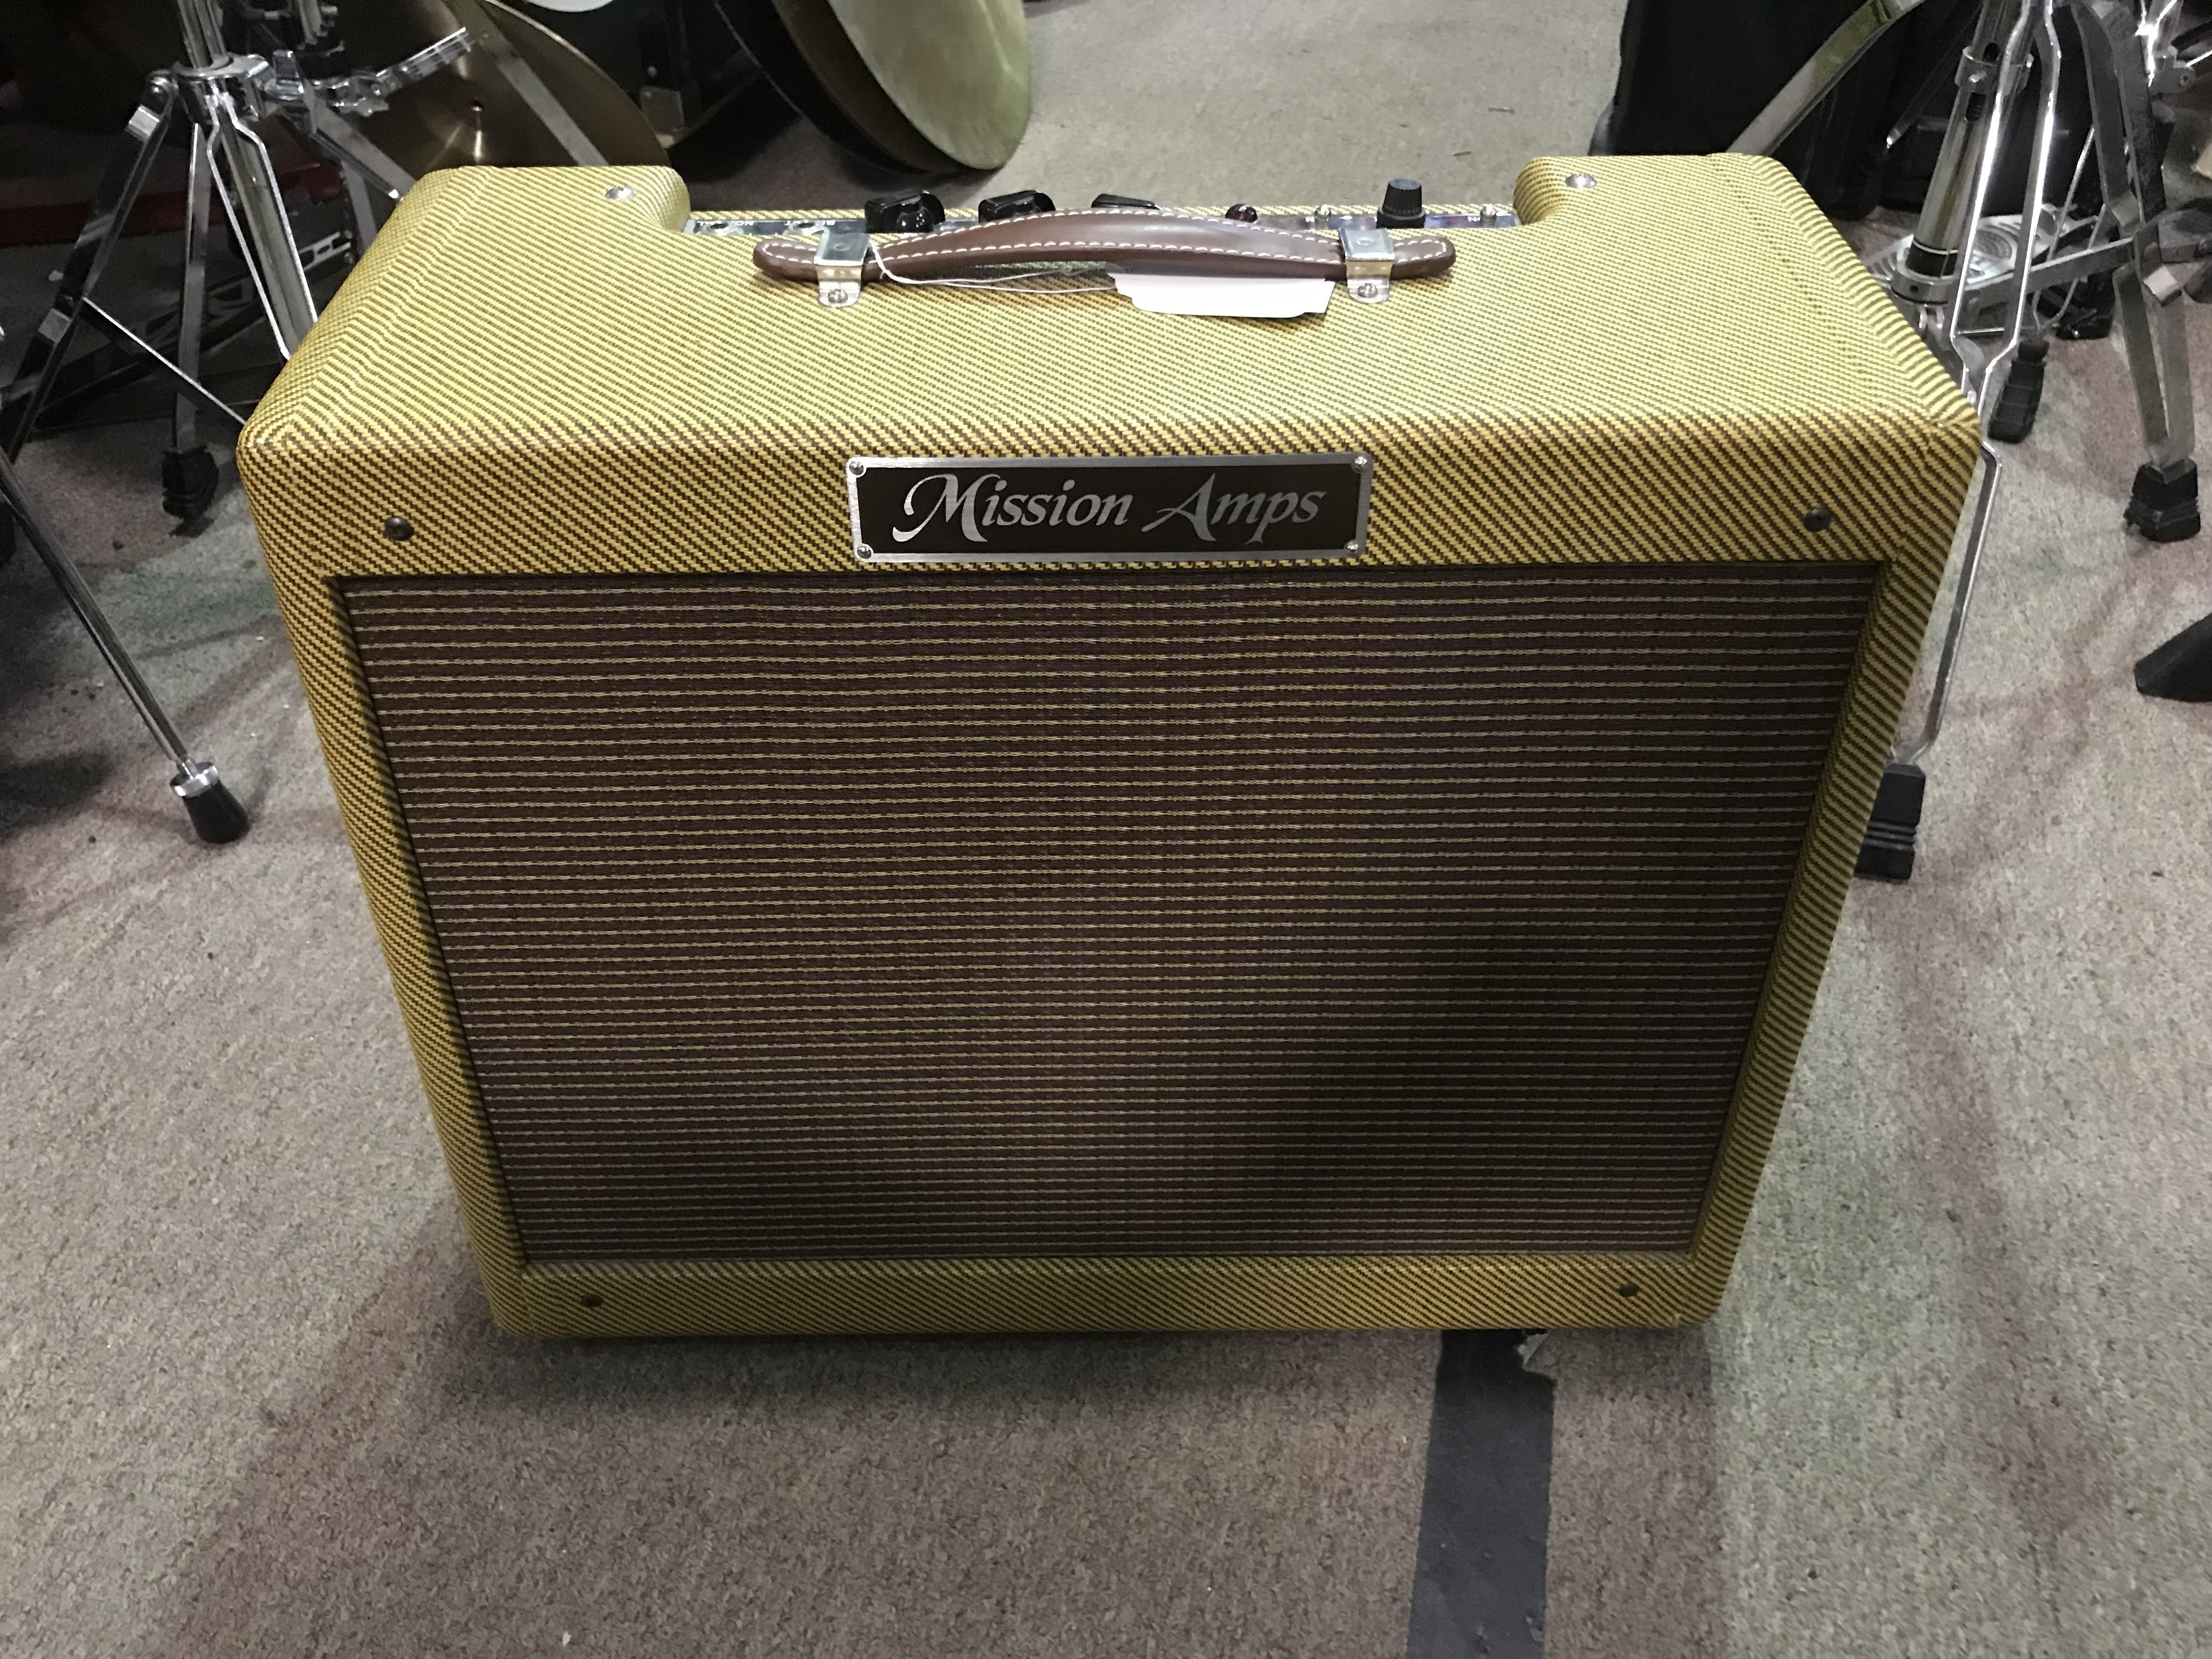 MISSION TWEED DELUXE 5E3 15W 1X12 Tube Combo Guitar Amplifier